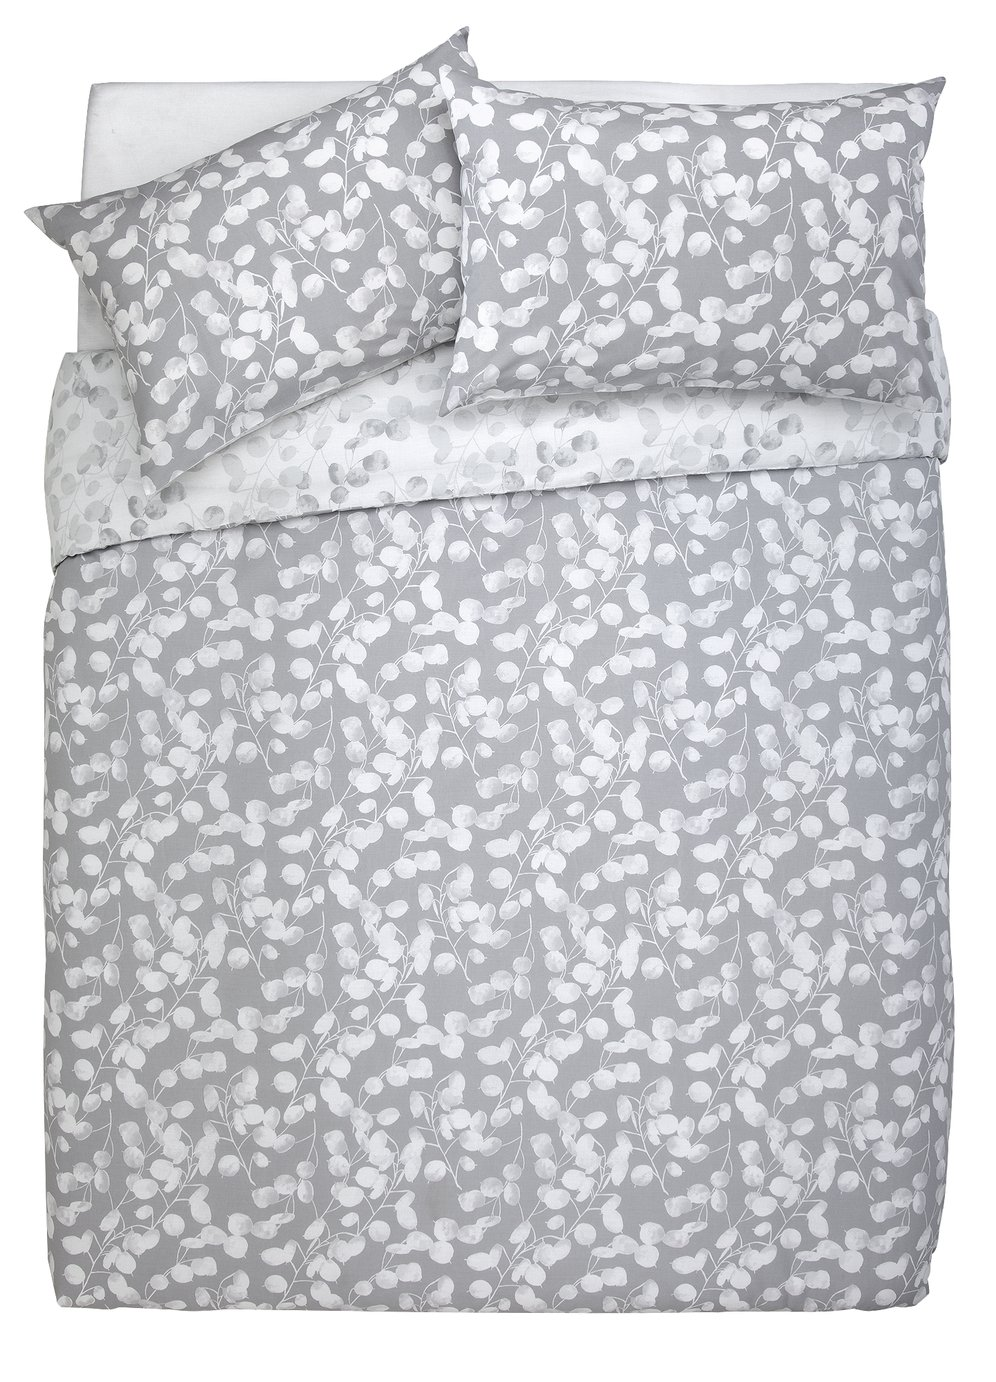 Argos Home Grey Honesty Bedding Set - Double